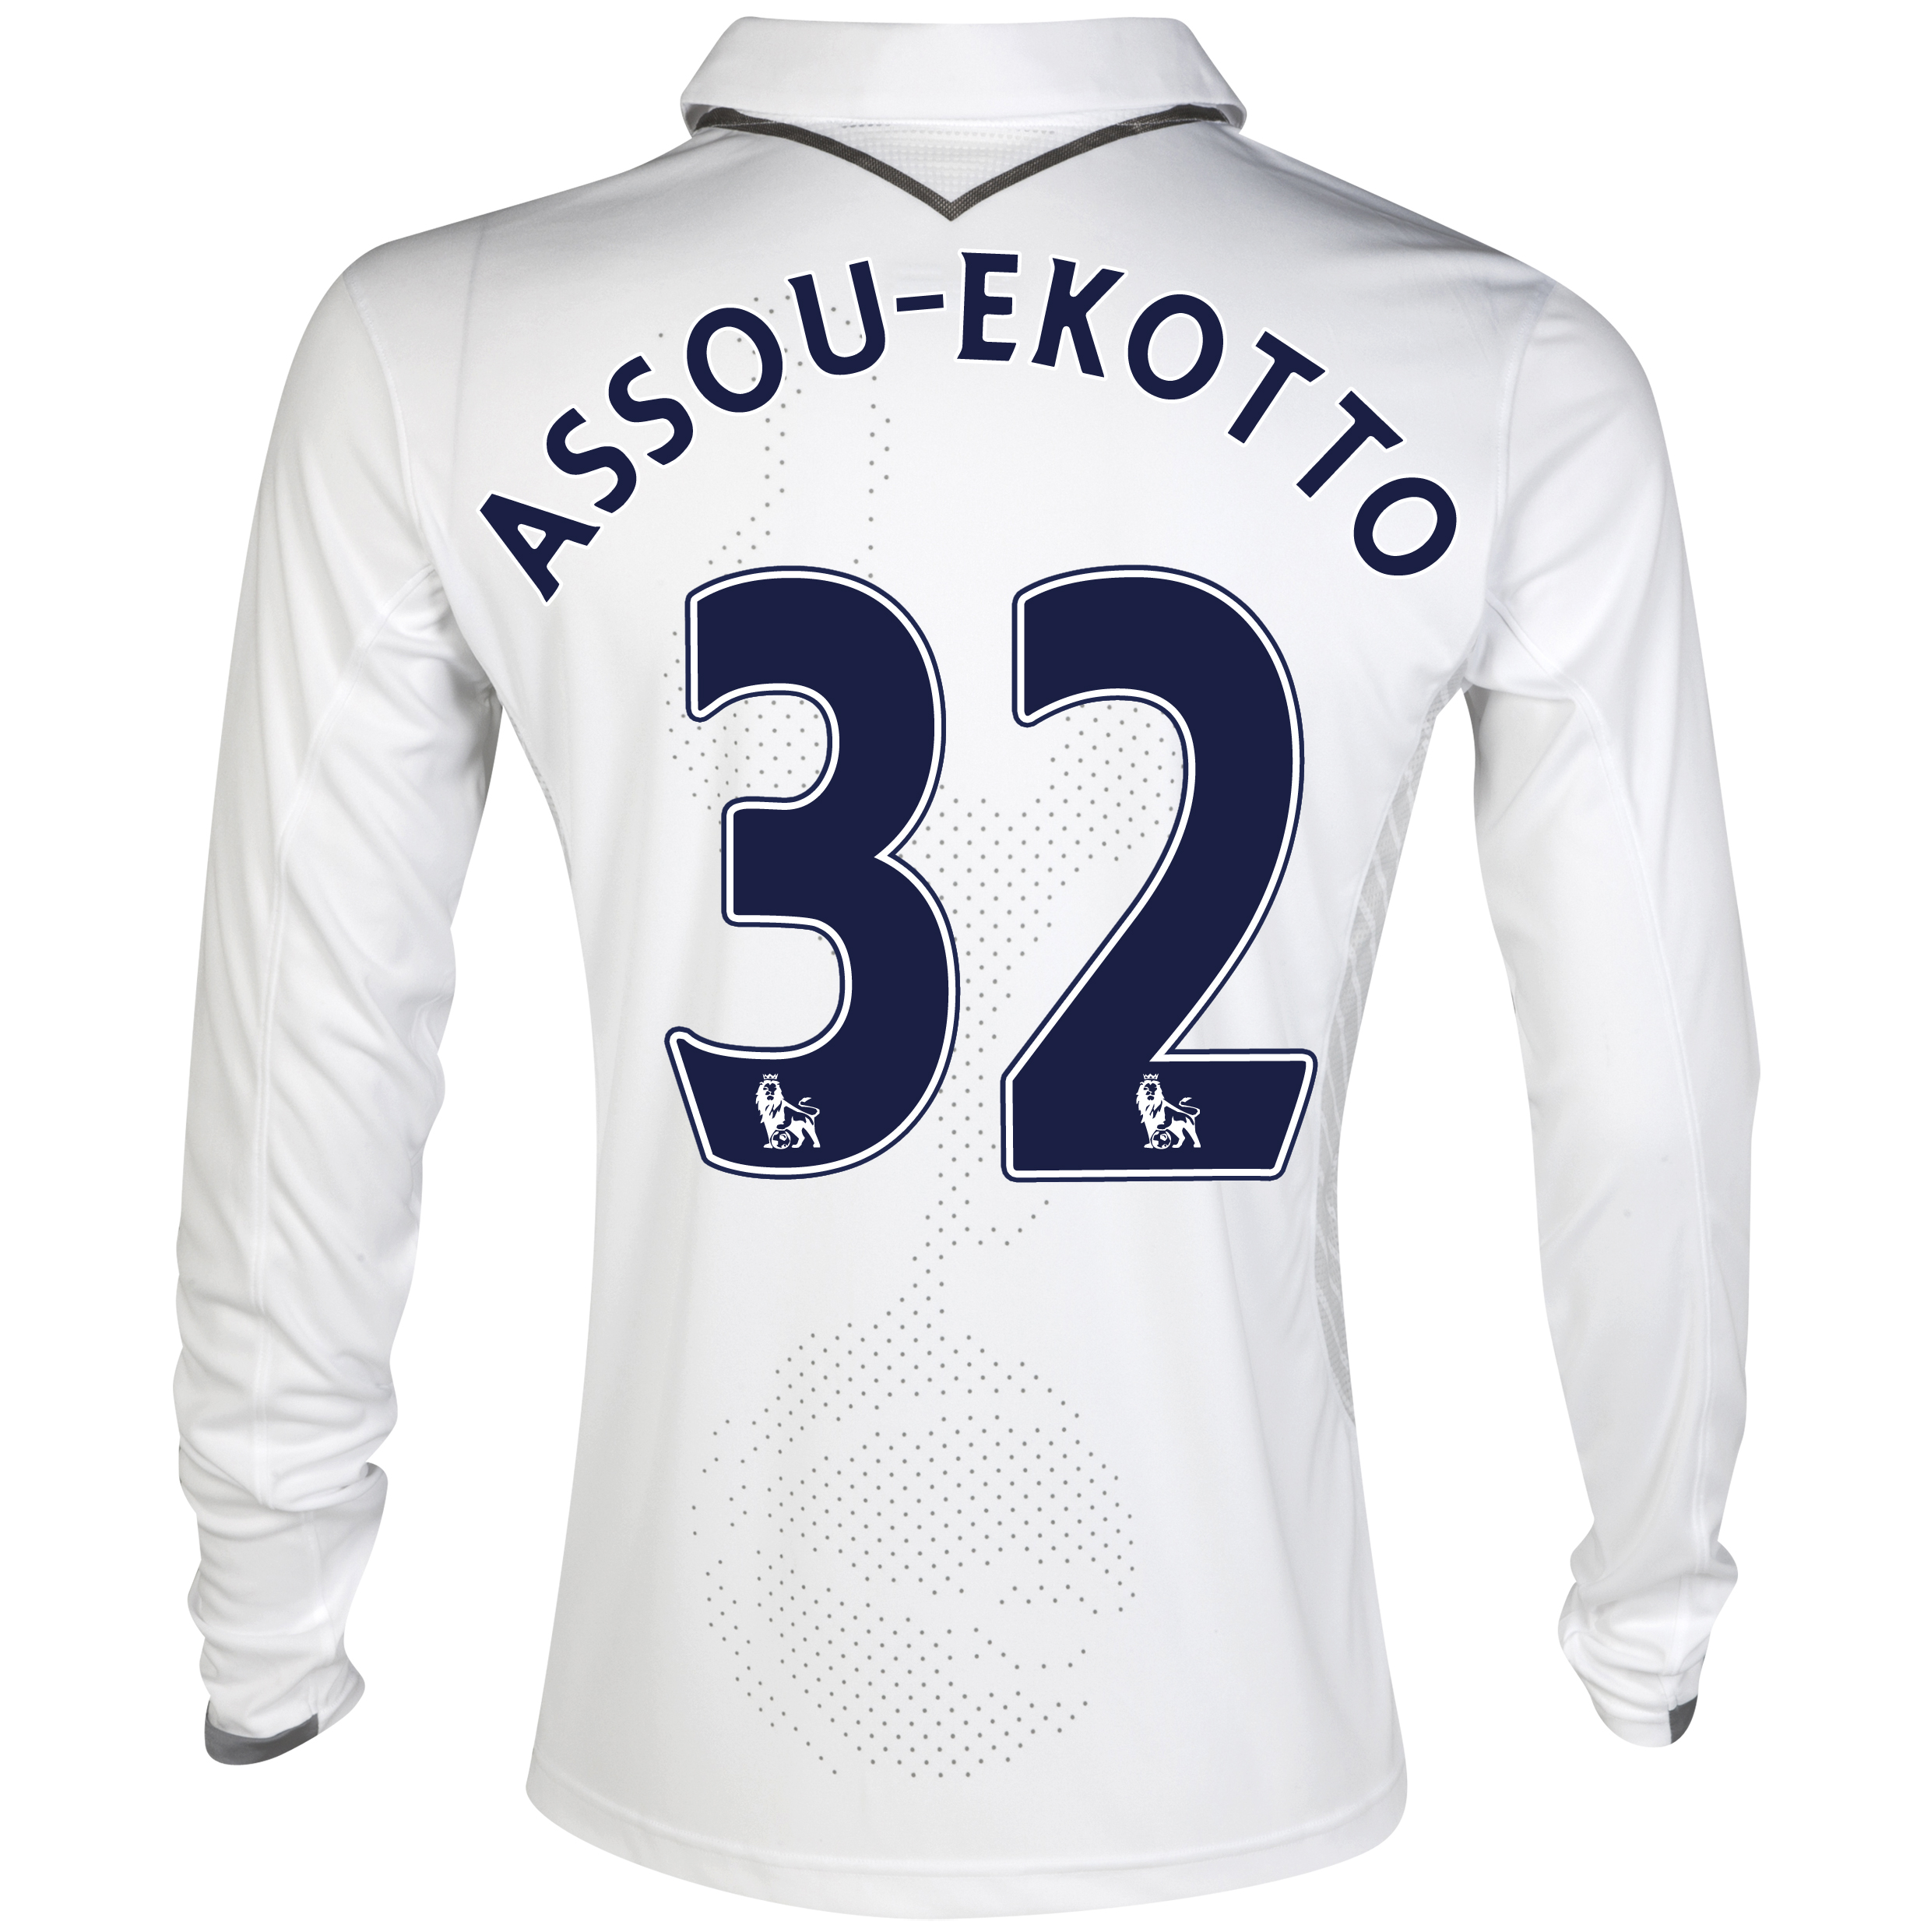 Tottenham Hotspur Home Shirt 2012/13 - Long Sleeve with Assou-Ekotto 32 printing